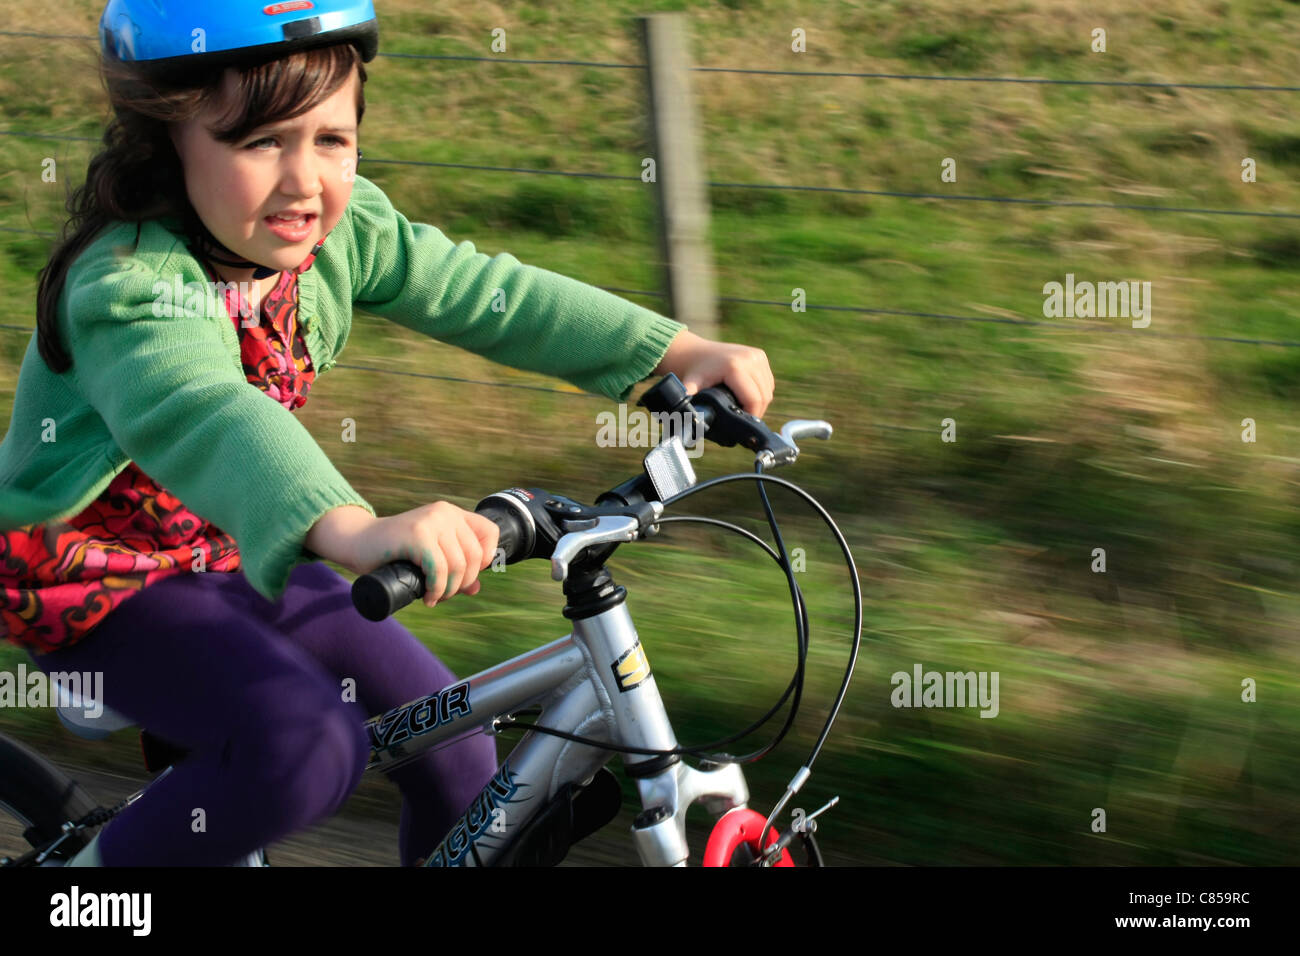 Child enjoying the fresh air on a bike - Stock Image